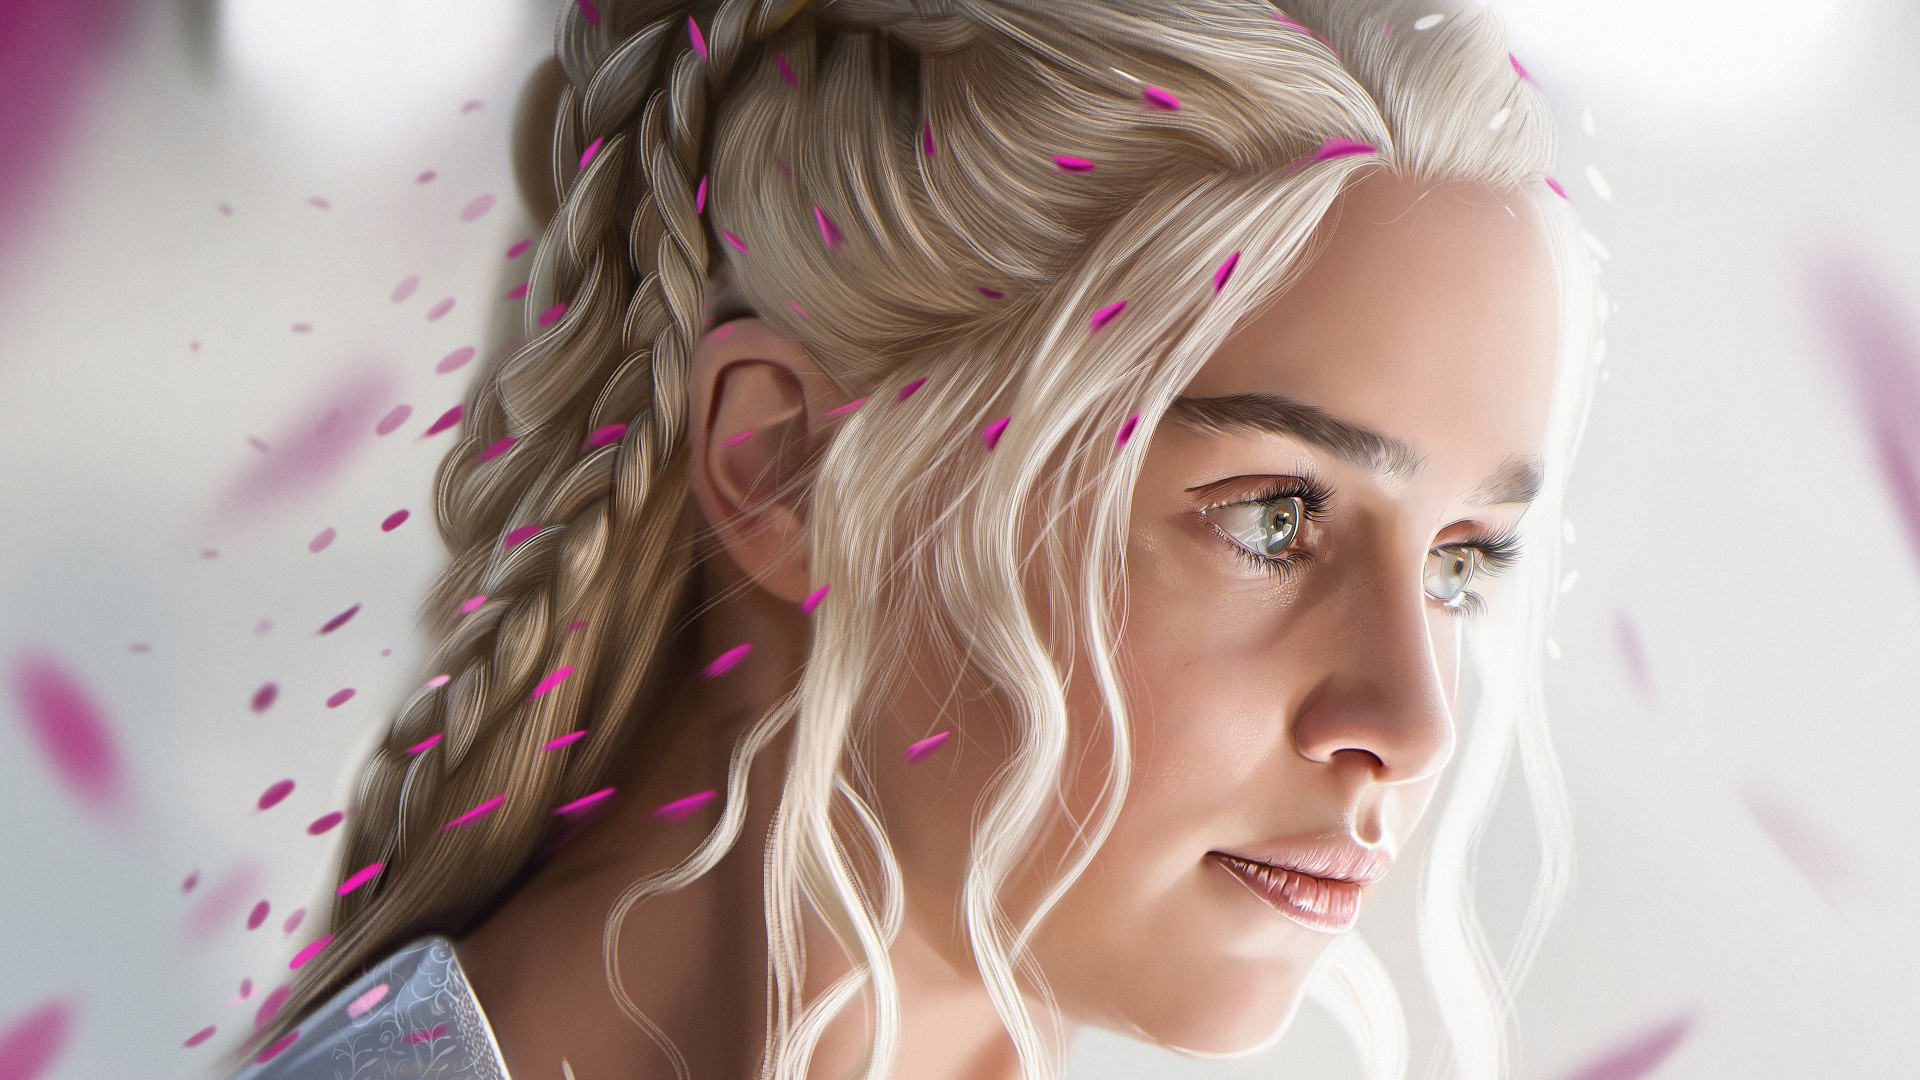 Cute Girl Wallpapers For Iphone Daenerys Targaryen Artwork 4k Wallpapers Hd Wallpapers